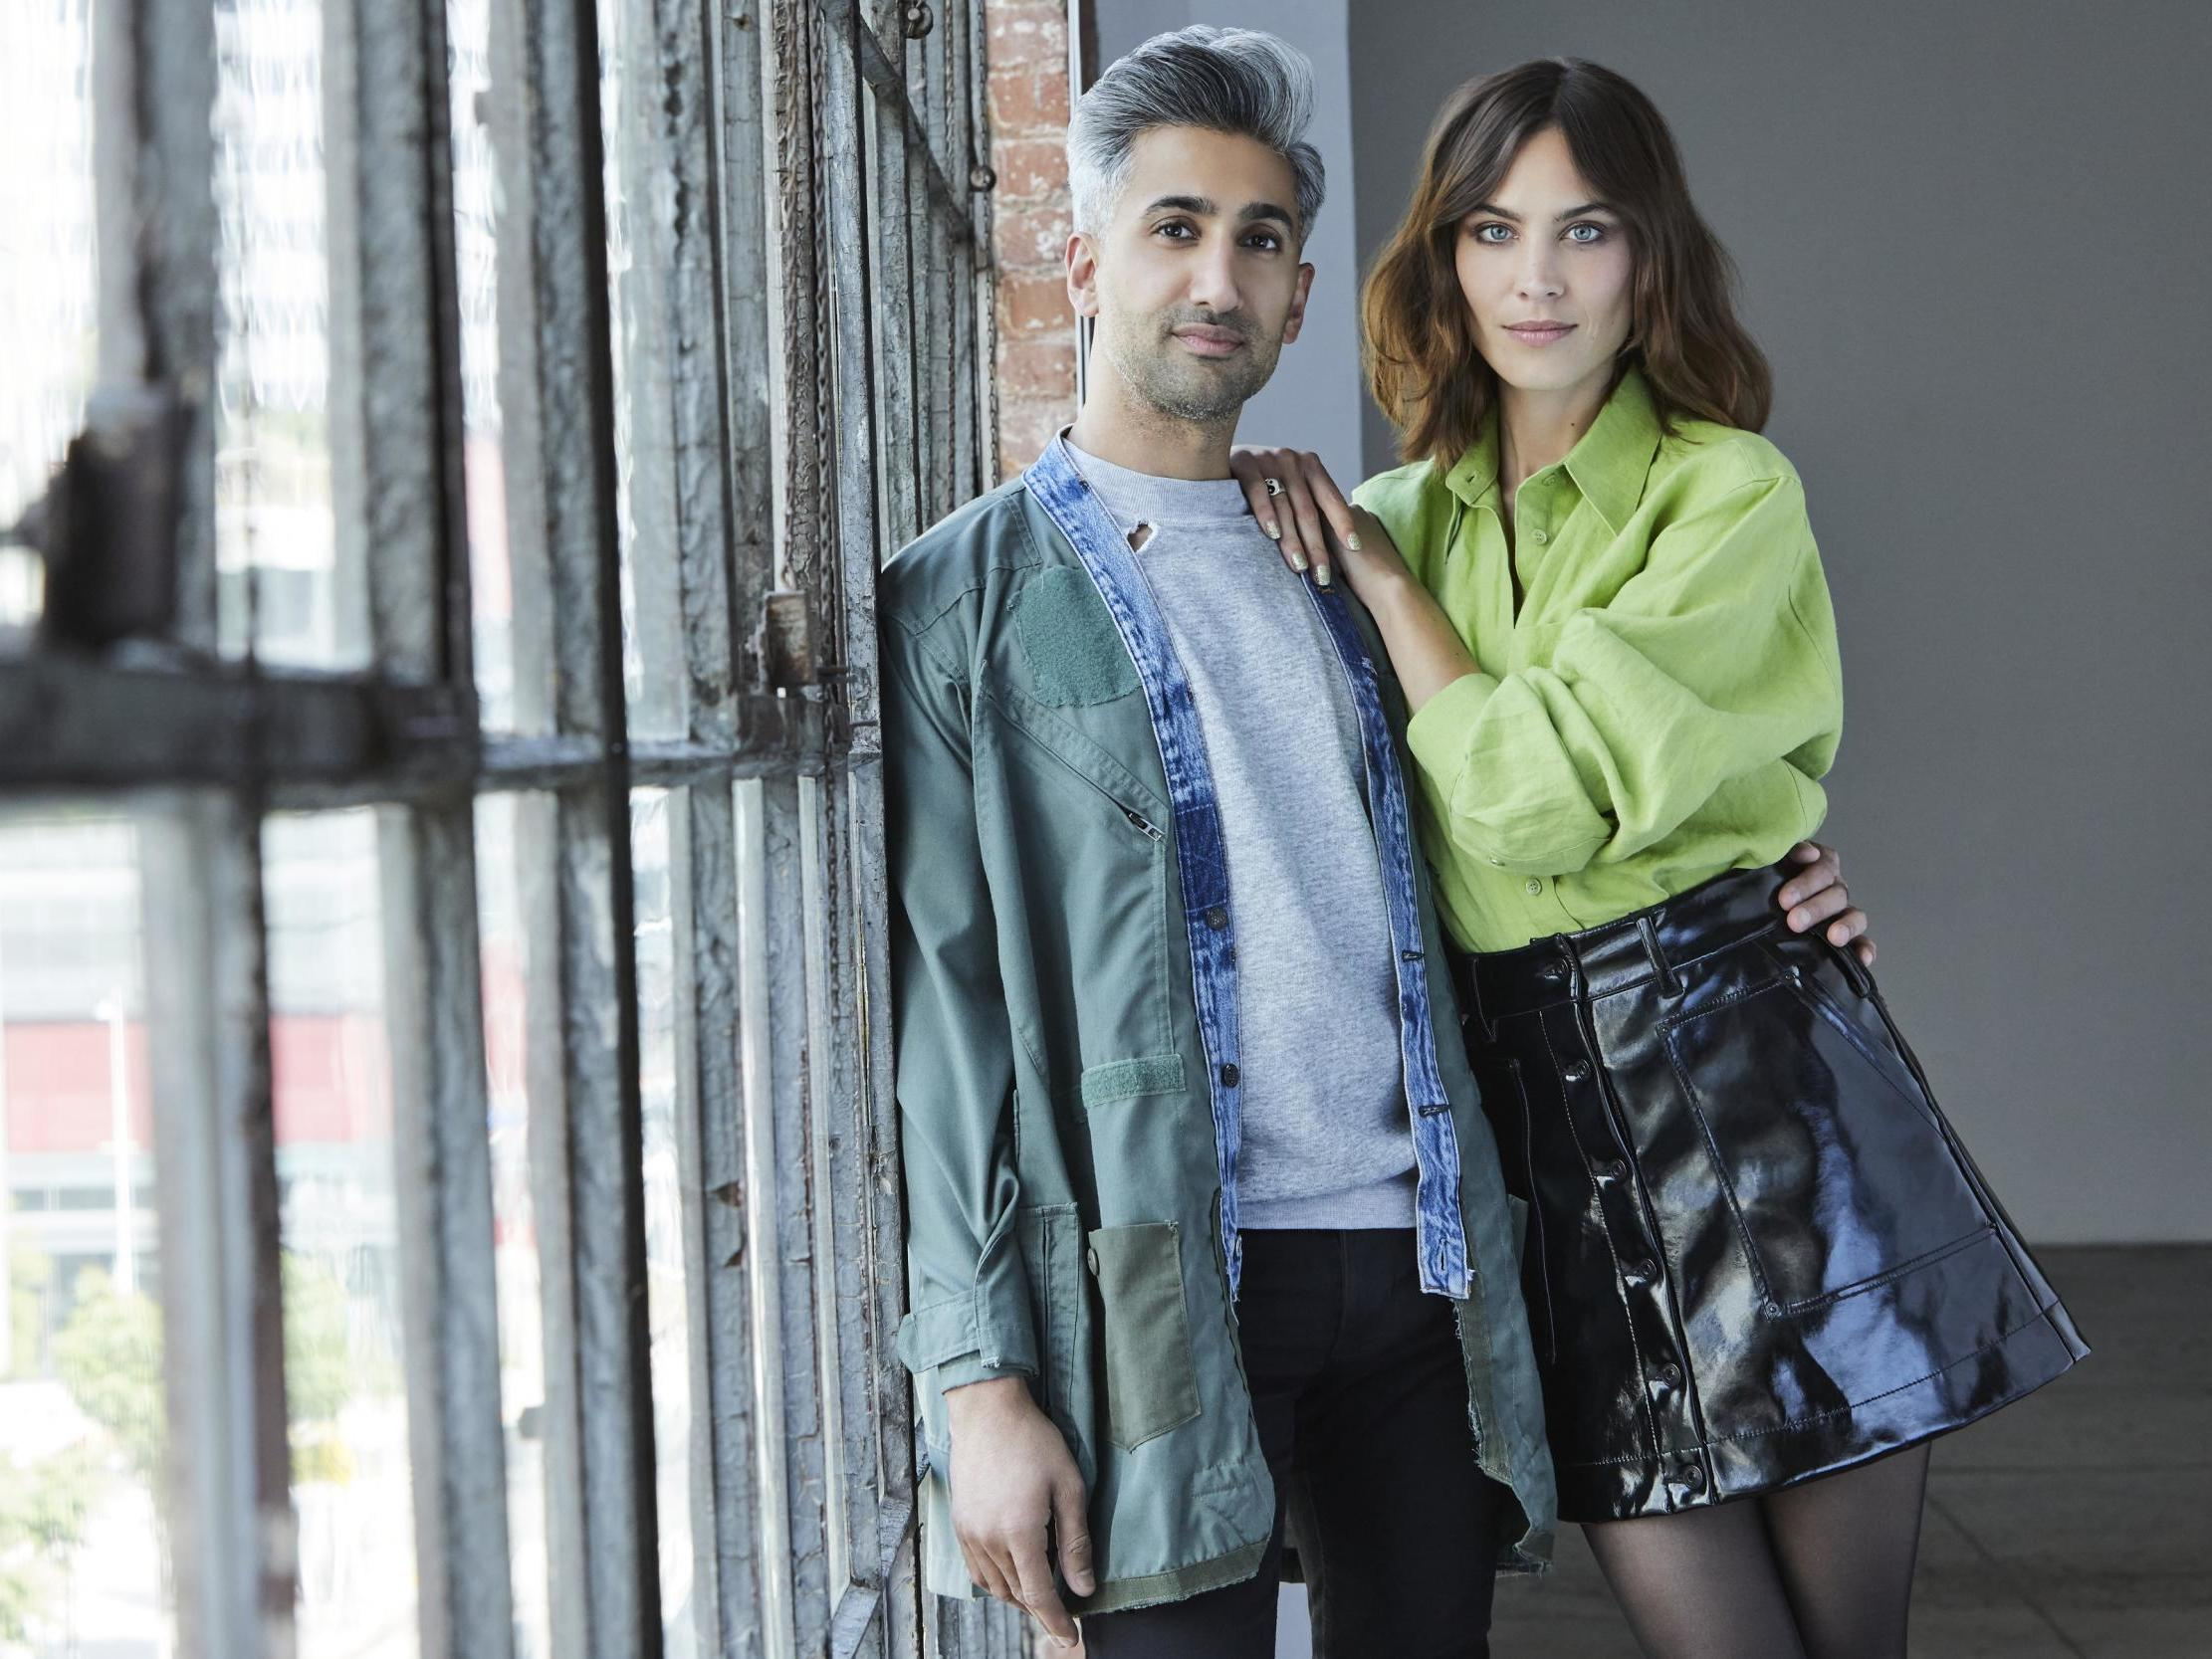 Next In Fashion Who Are The 18 Designers Competing In Alexa Chung And Tan France S New Show The Independent Independent